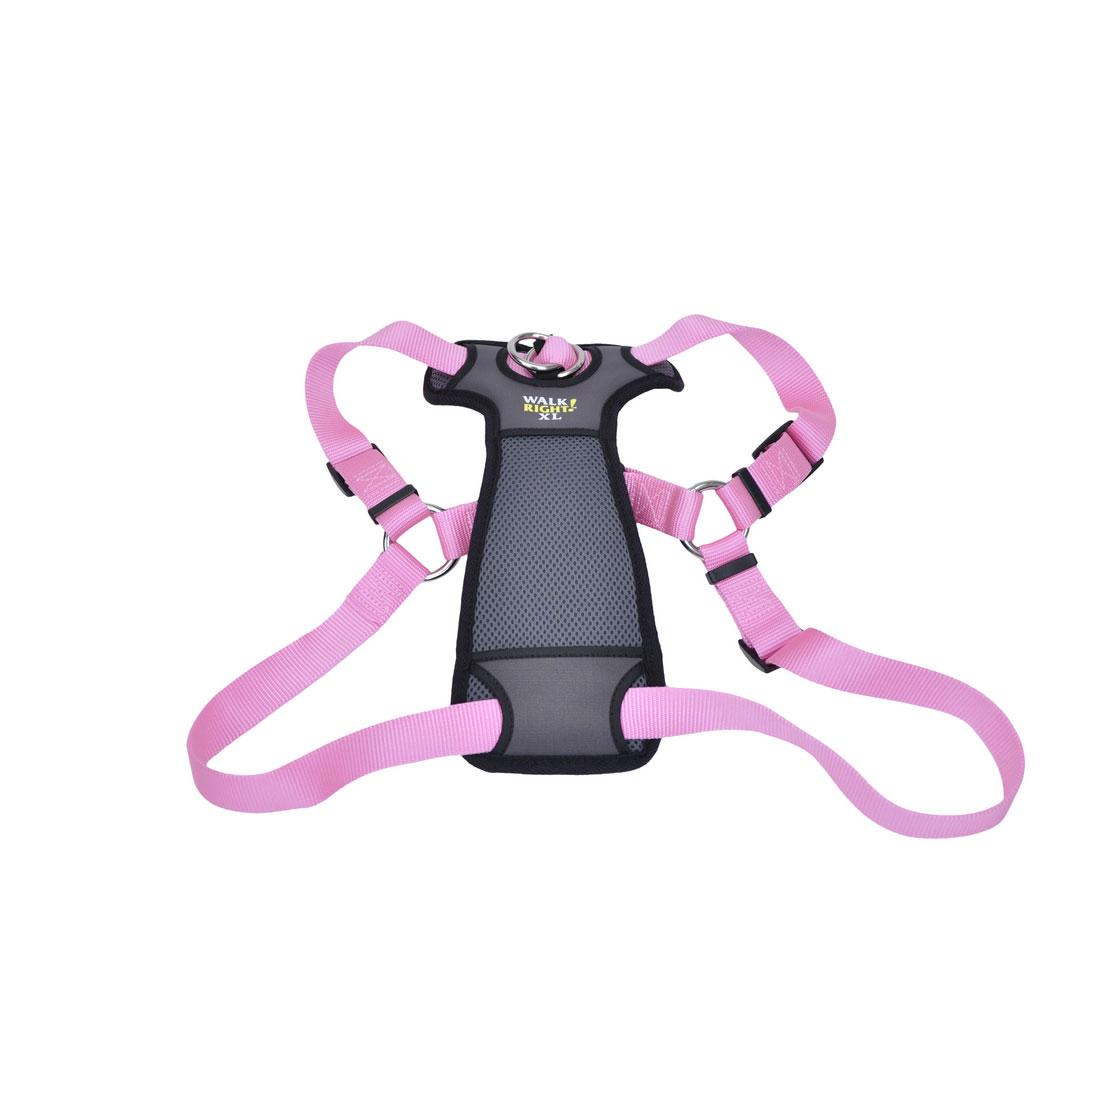 Coastal Walk Right! Front-Connect No-Pull Padded Dog Harness, Pink Bright, 27-43-in